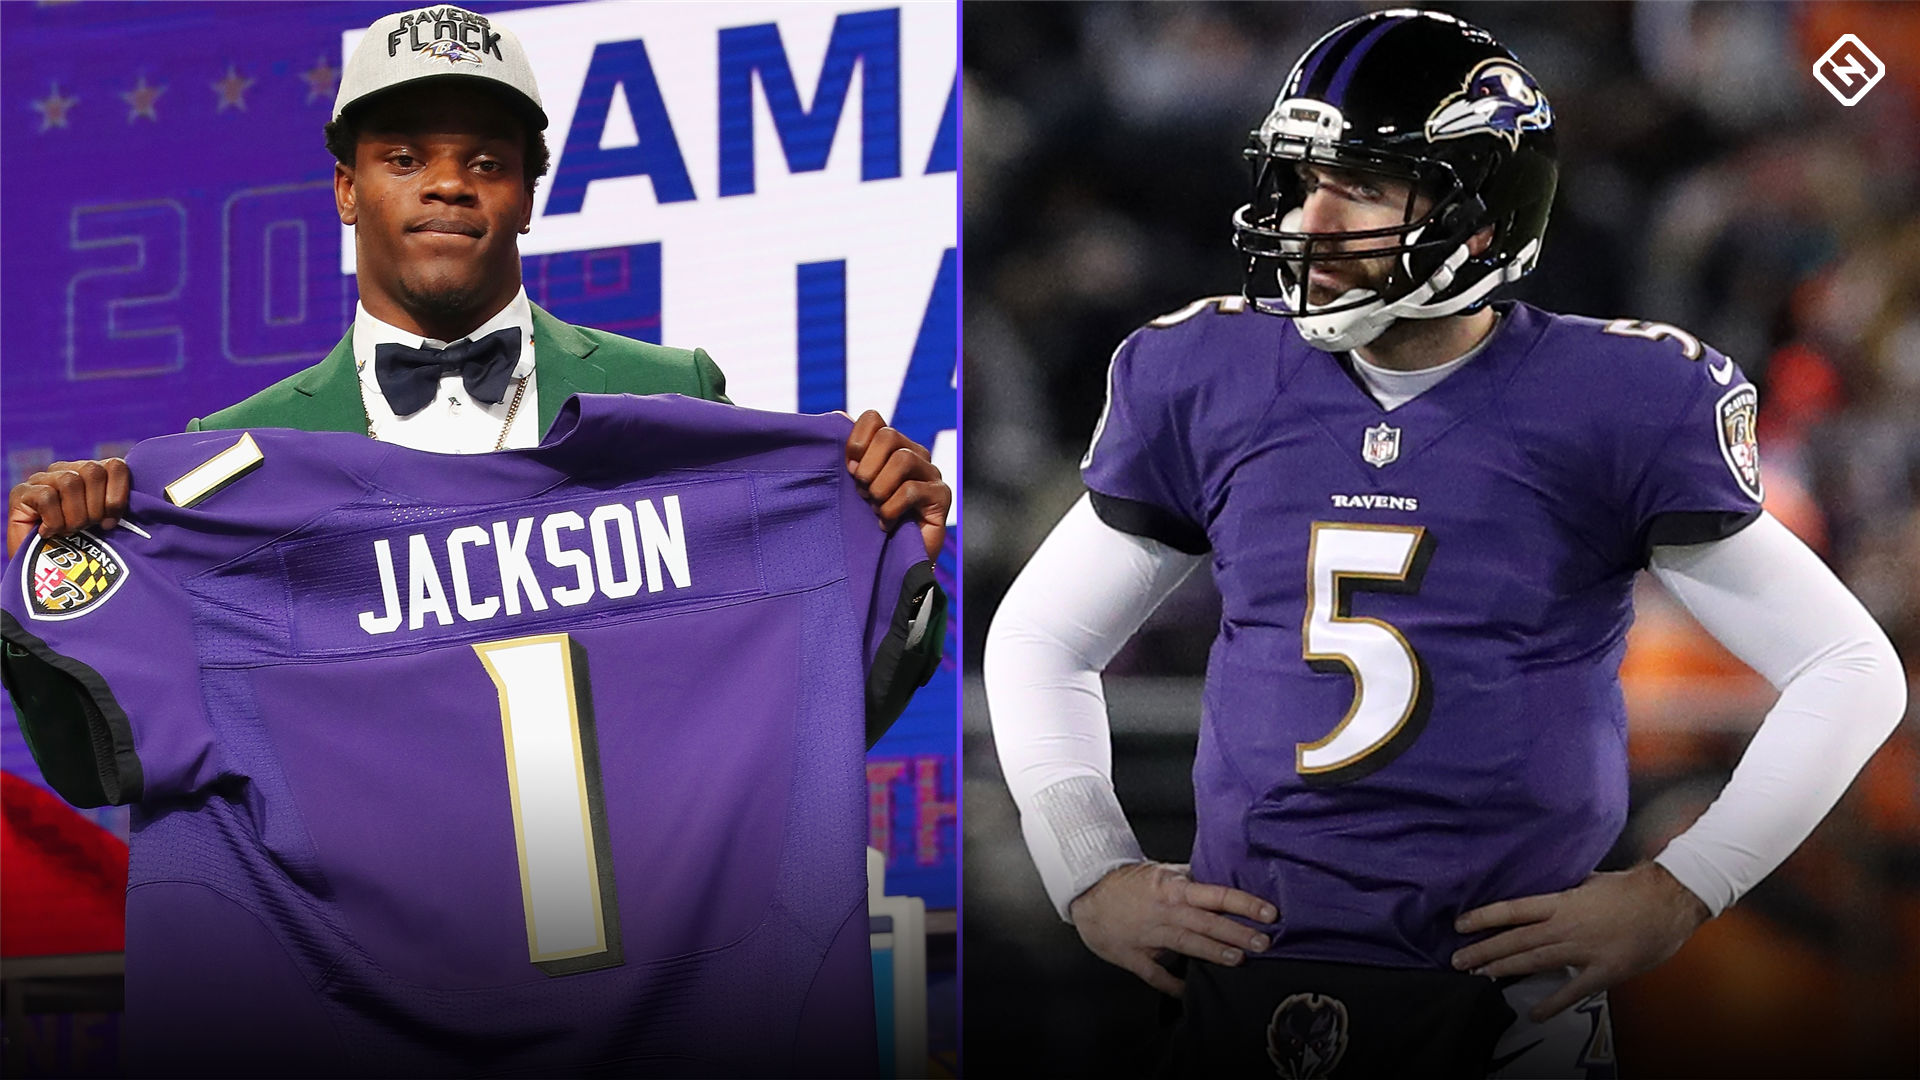 Lamar Jackson a real threat to unseat Joe Flacco as Ravens starter in 2018